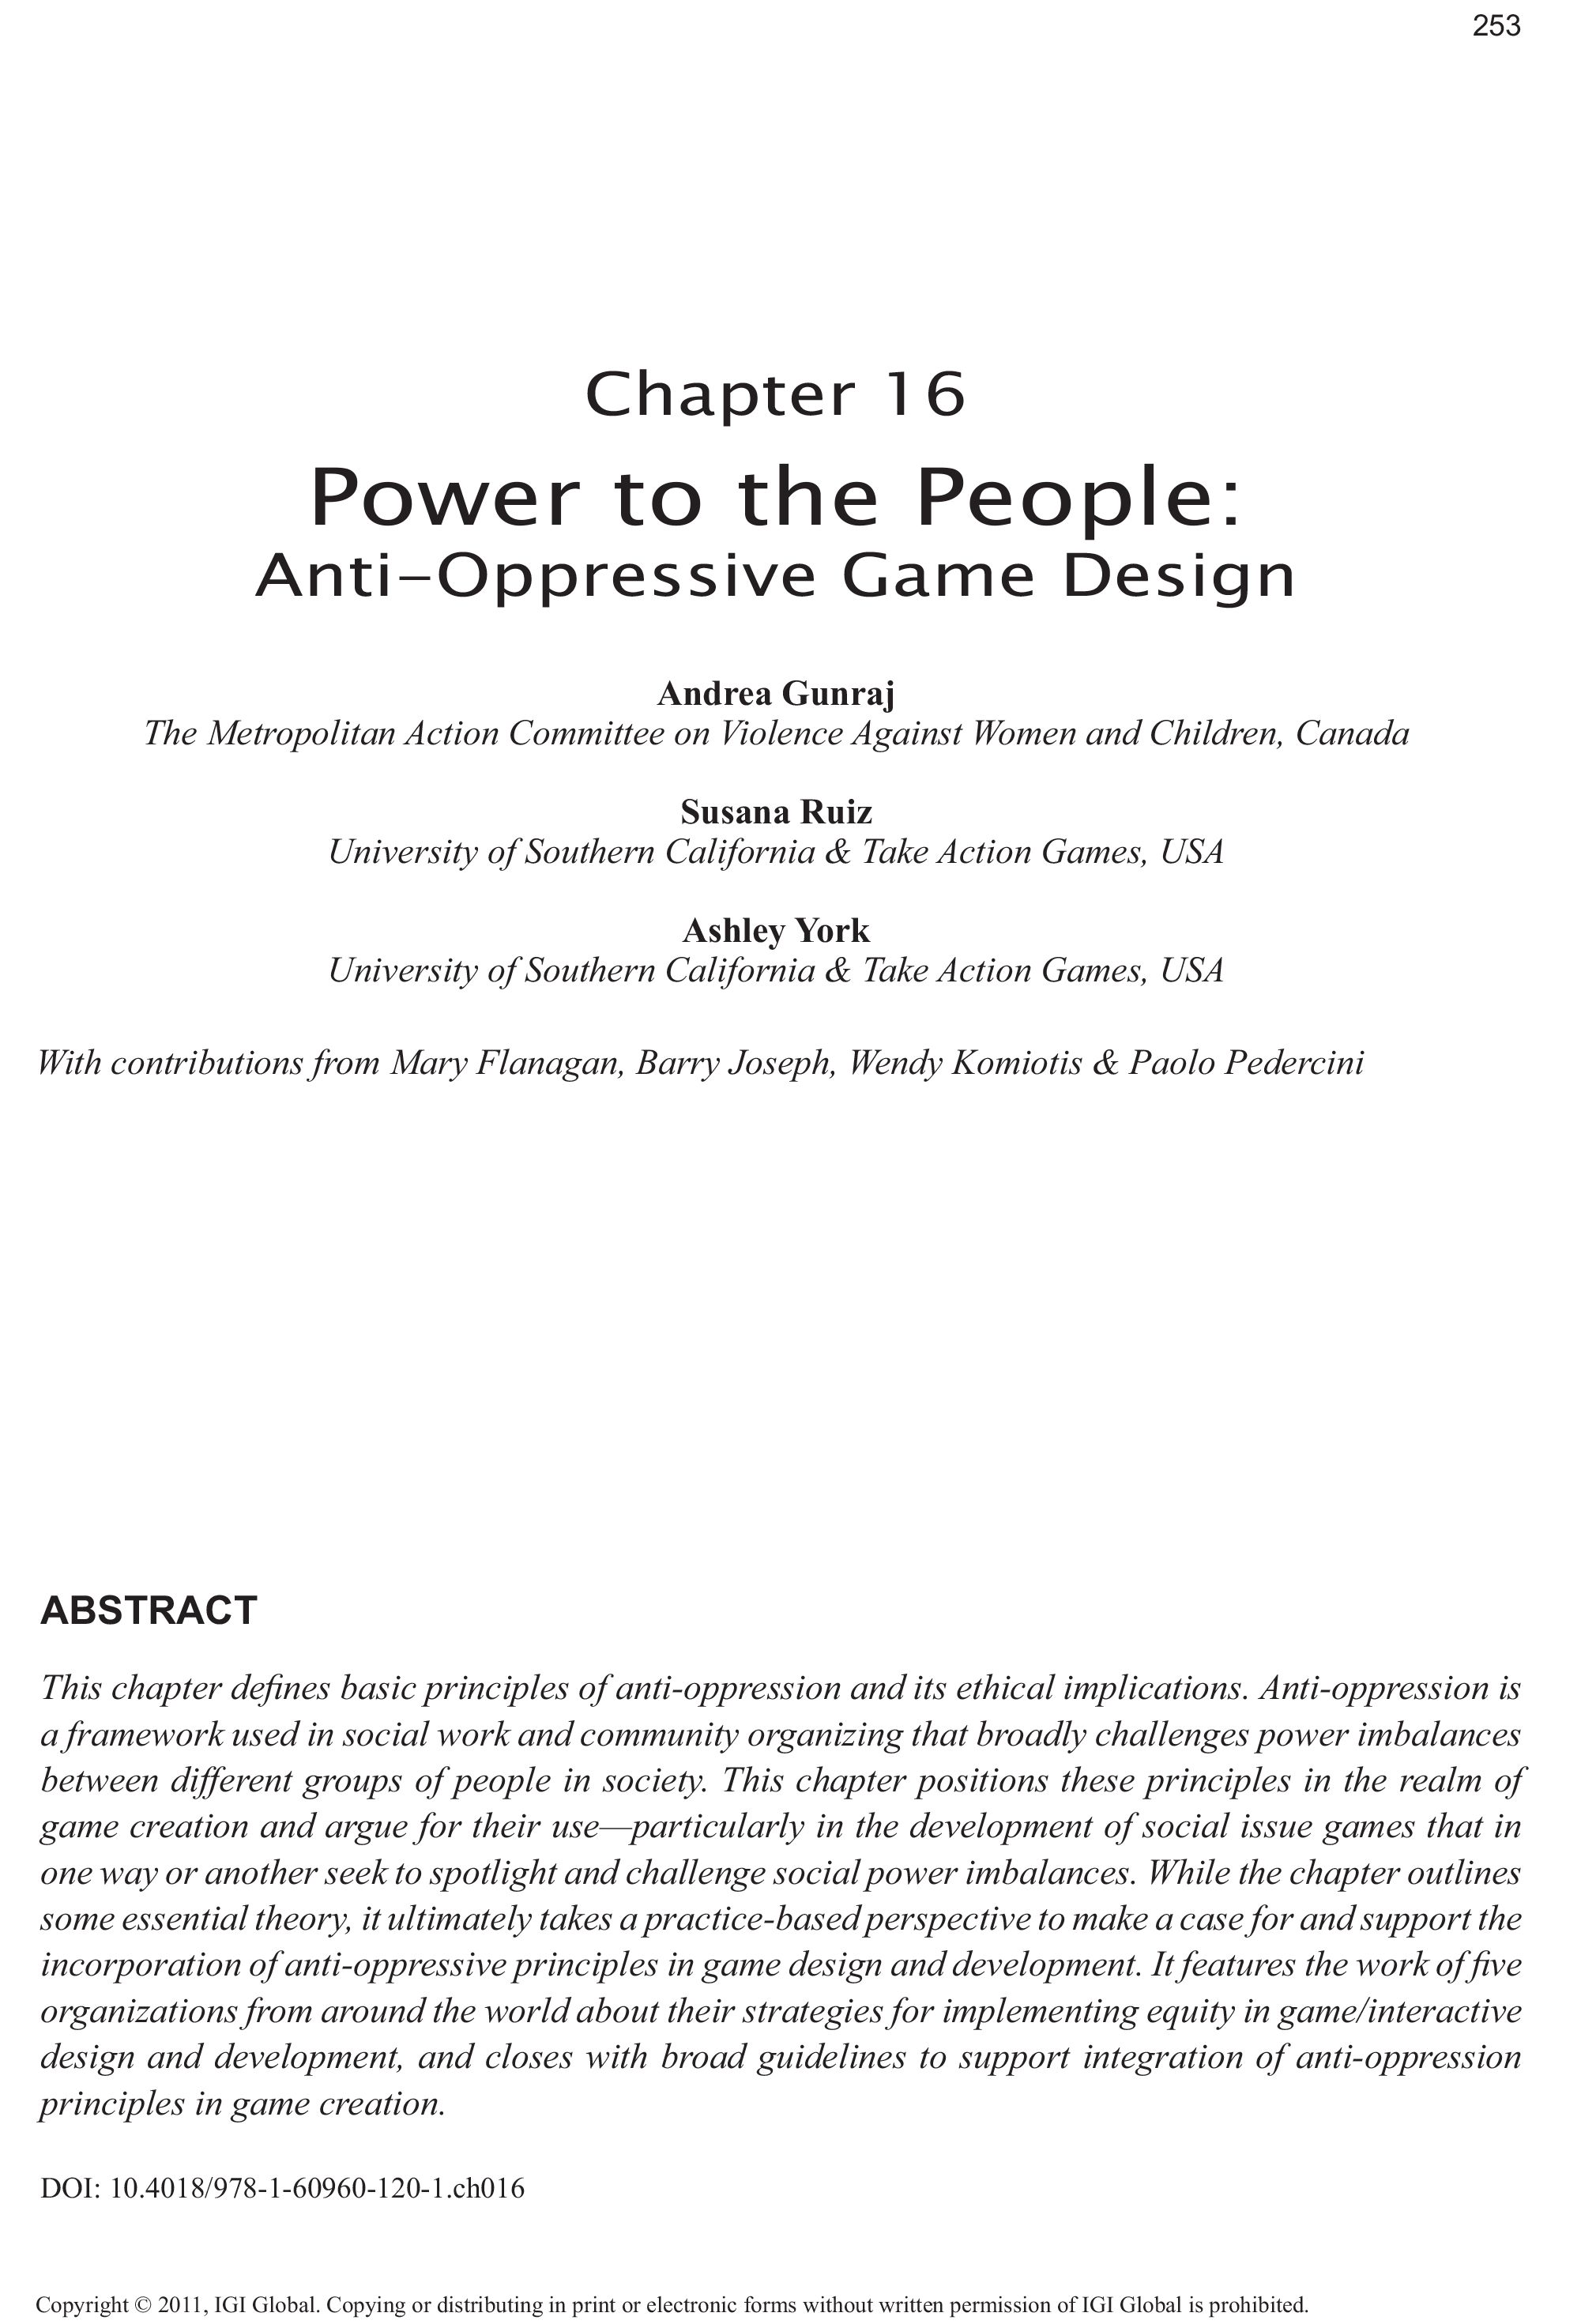 015 Power To The People Short Essay On Famine Marvelous Full